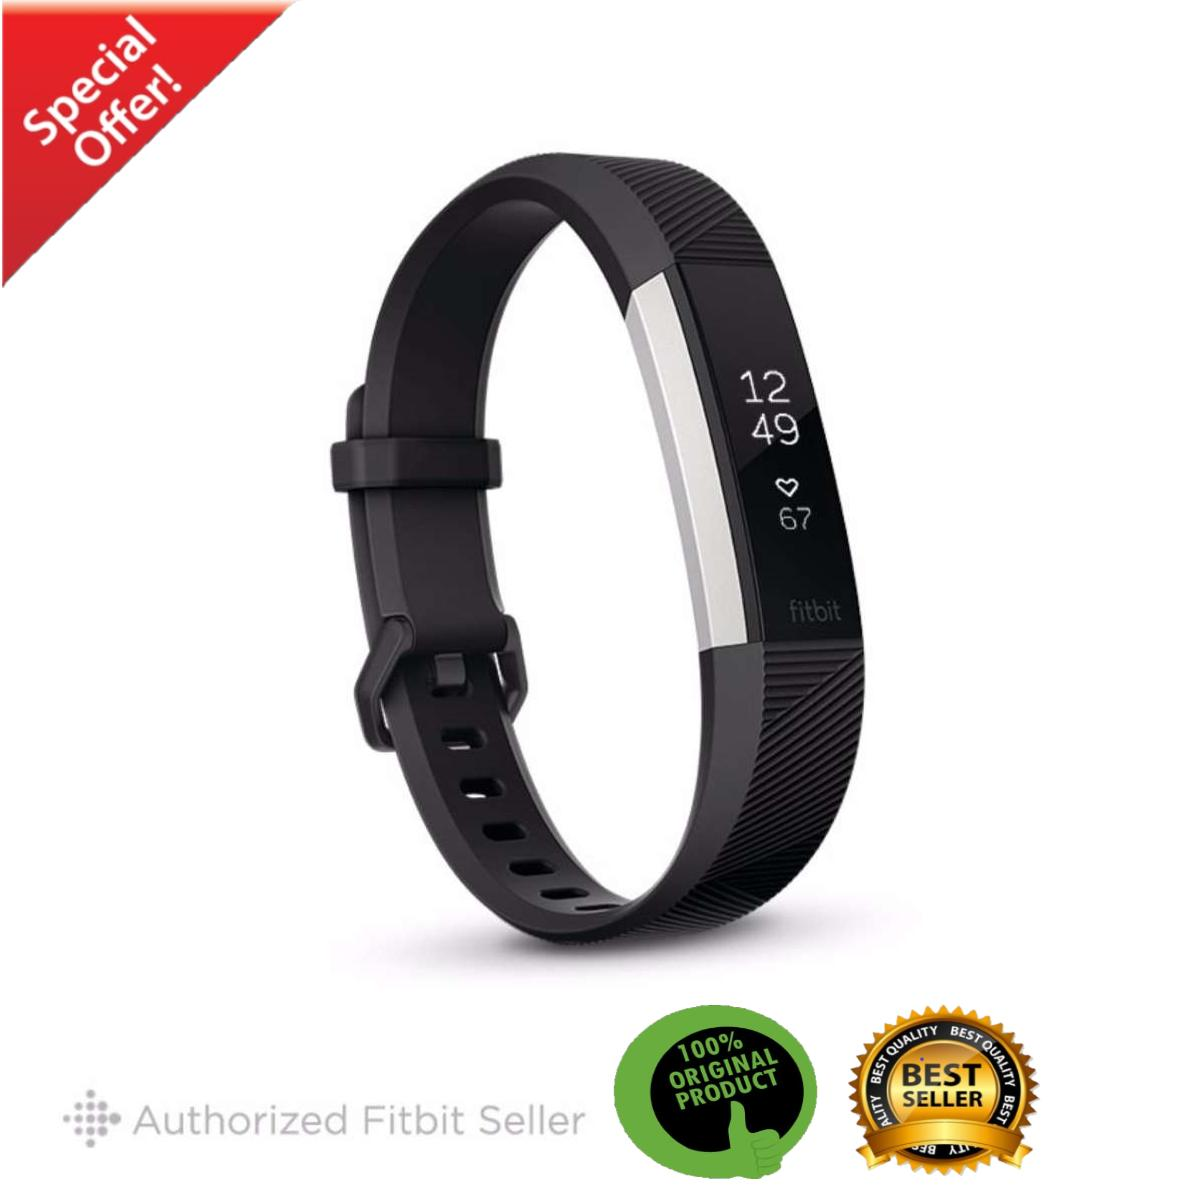 Fitbit Philippines: Fitbit price list - Fitbit Fitness Watch for